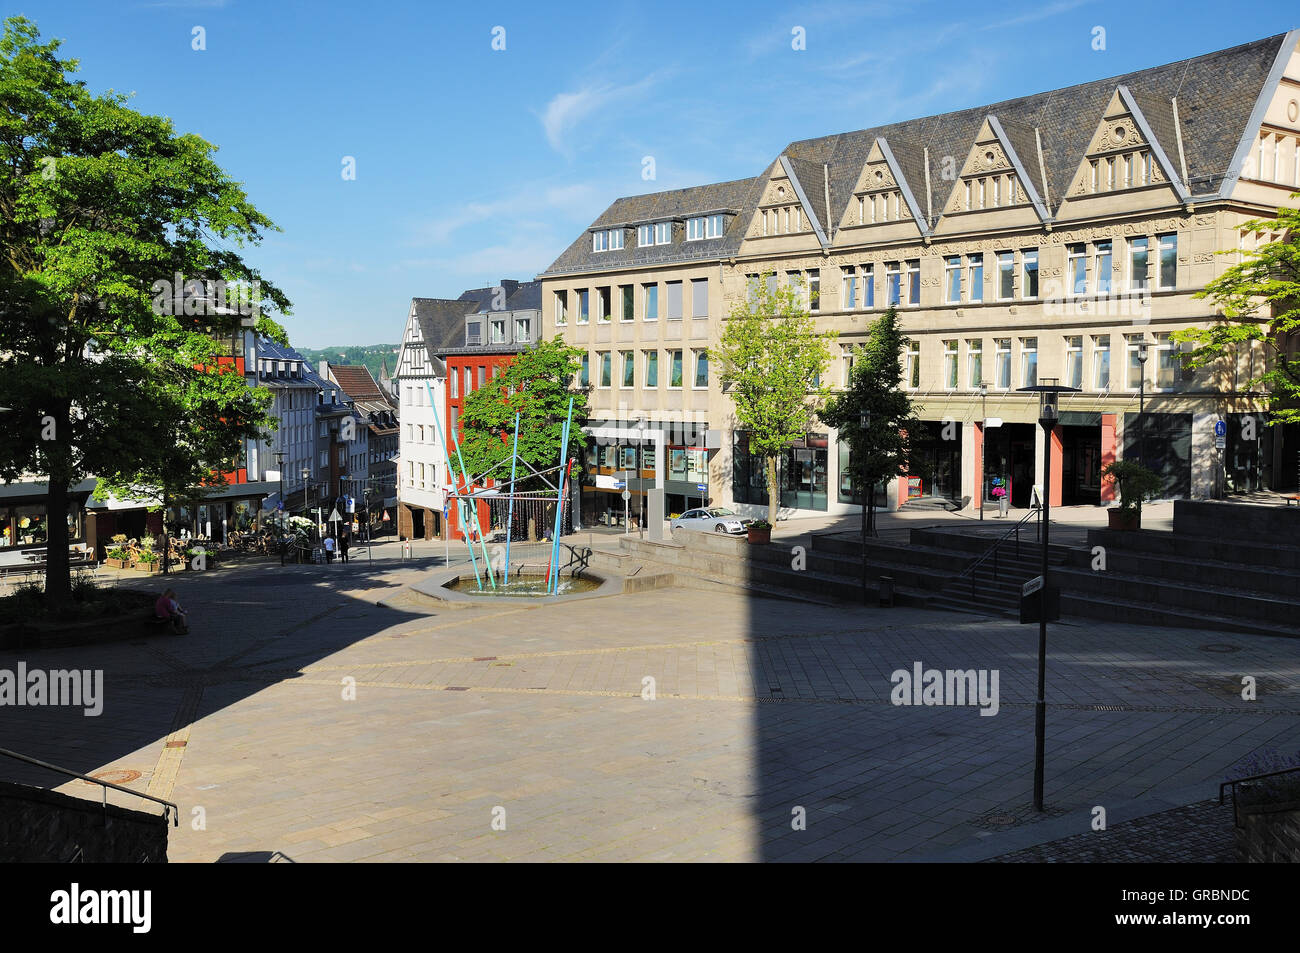 Marketplace In Siegen - Stock Image